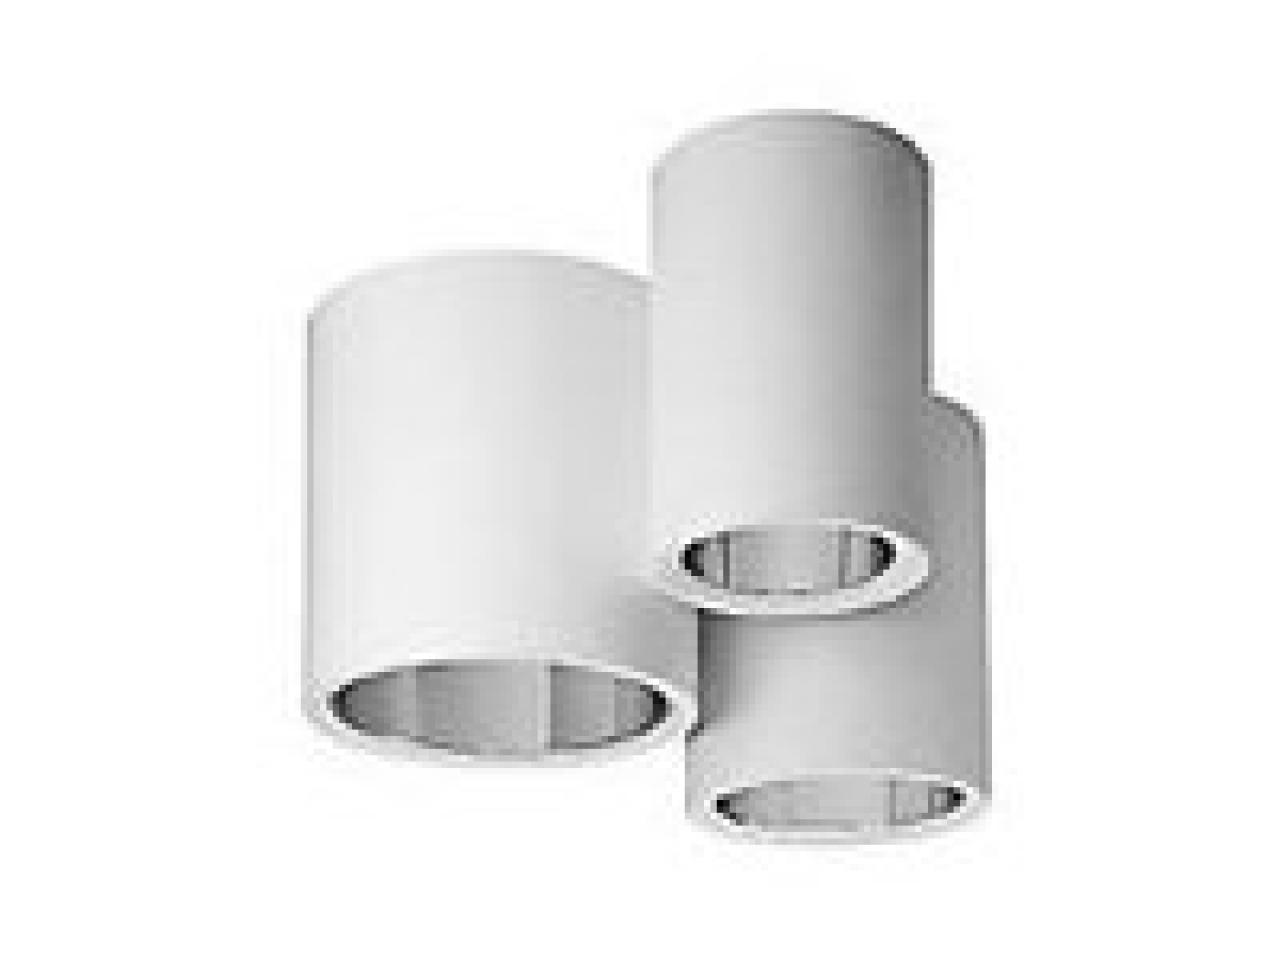 Stylish energy efficient bathroom lighting hgtv new options on the market aloadofball